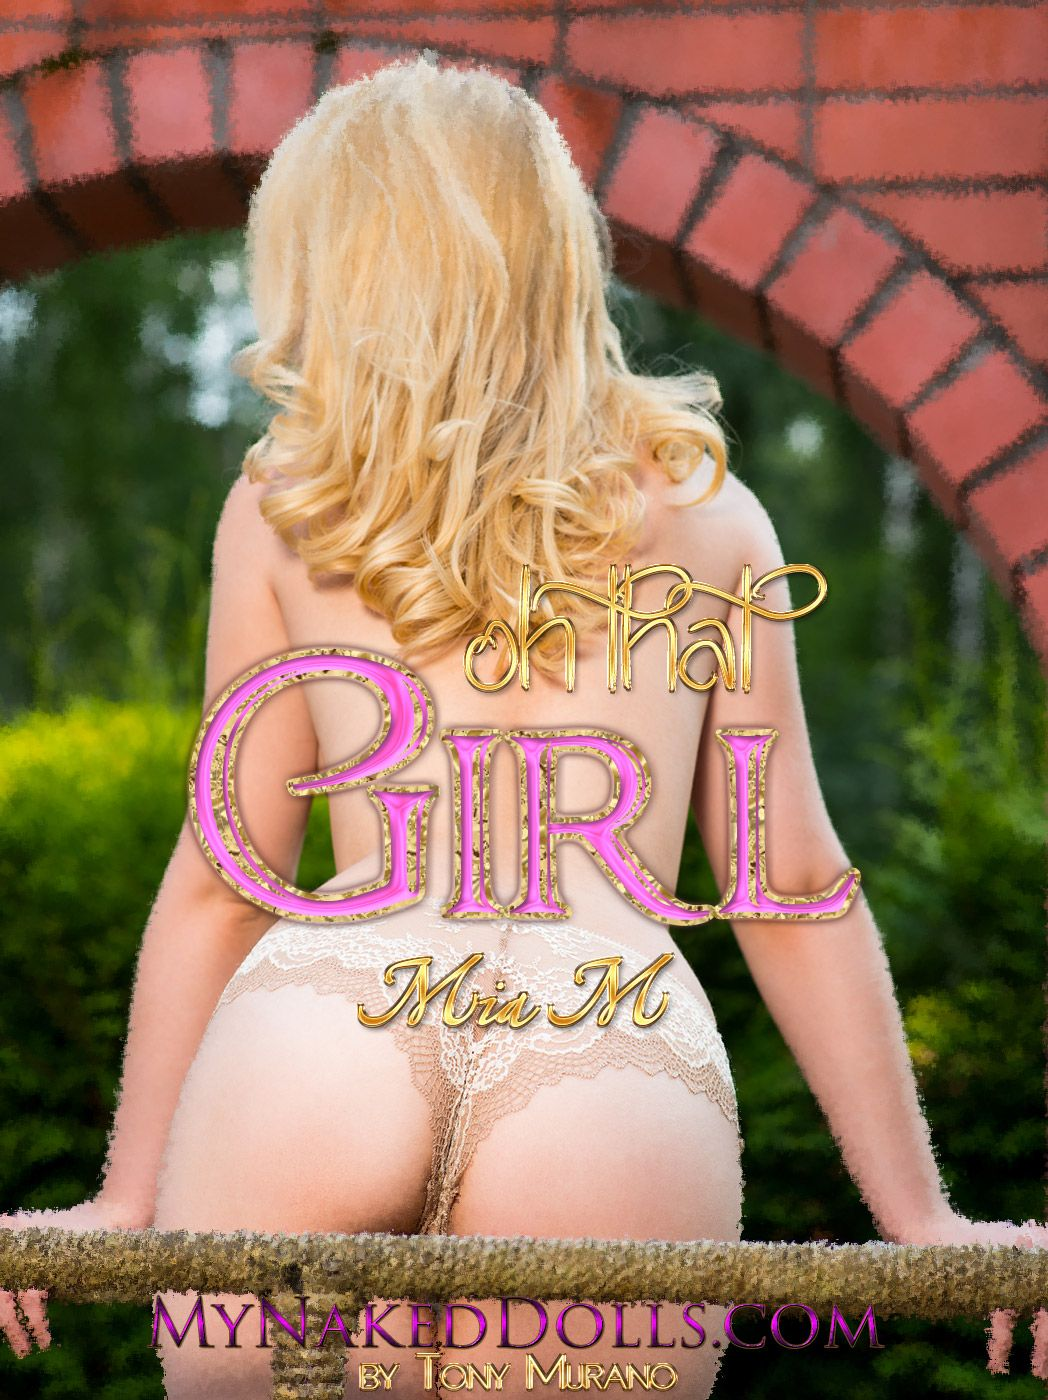 Mia M - OH THAT GIRL 23